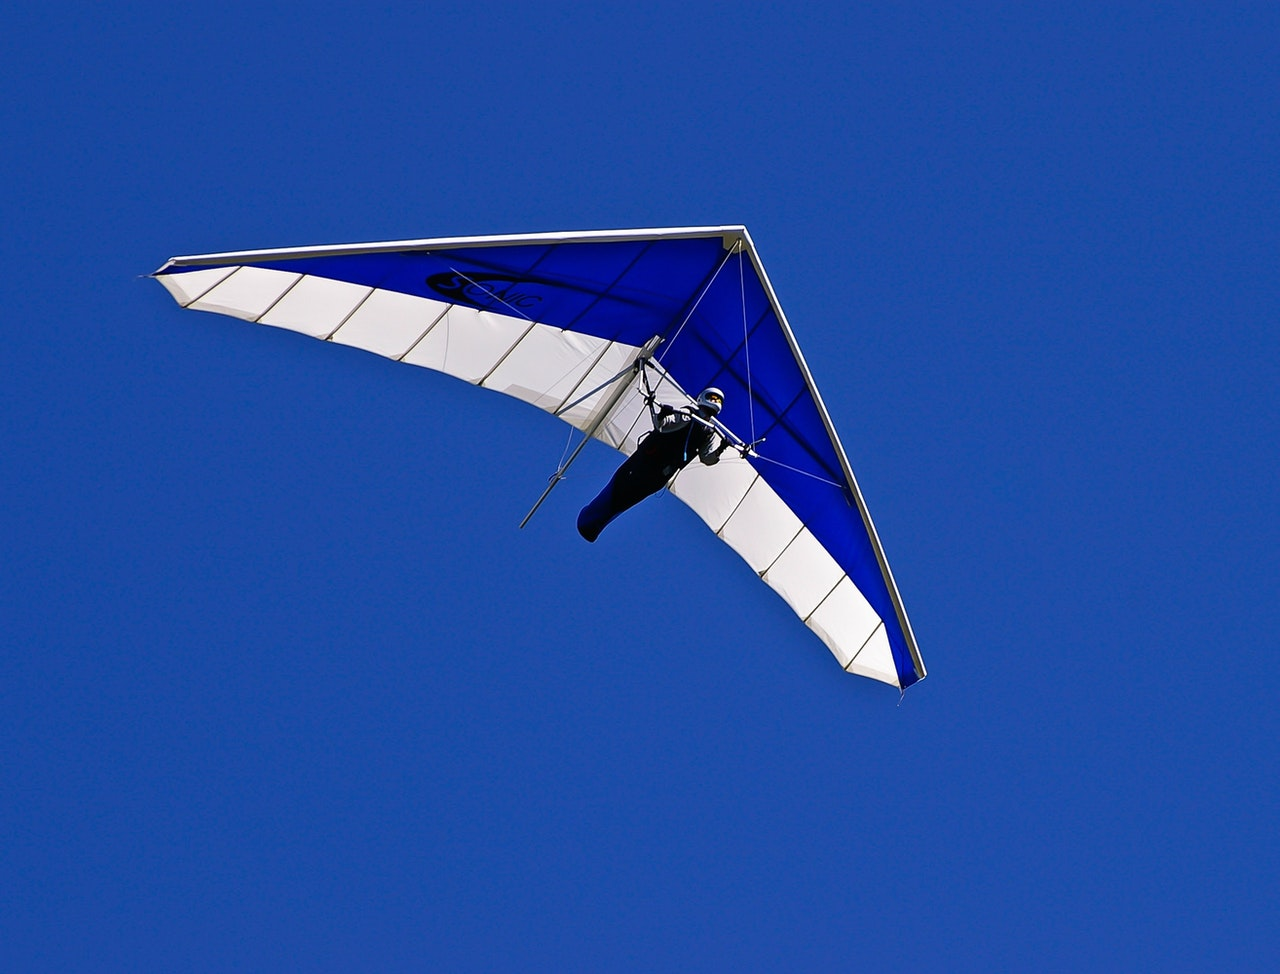 Is hang gliding or paragliding more fun?